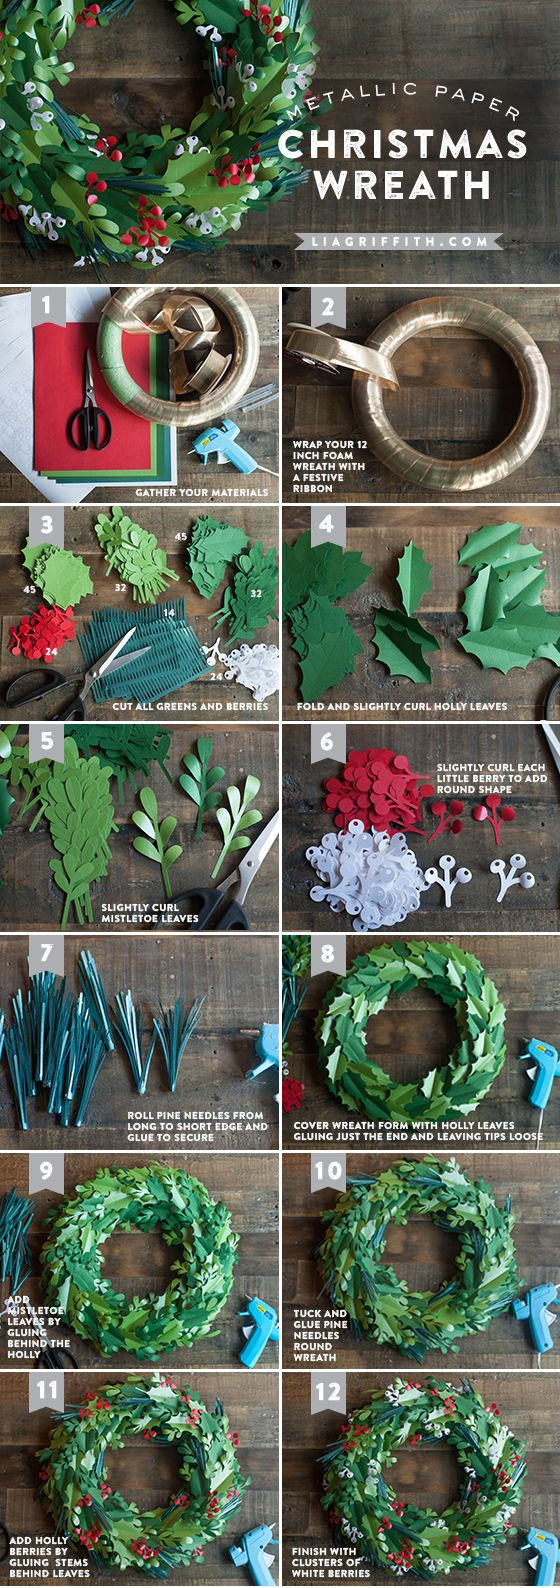 Christmas Wreath Tutorial Lia Griffith Blog | Purely Inspiration http://liagriffith.com/make-a-paper-christmas-wreath/